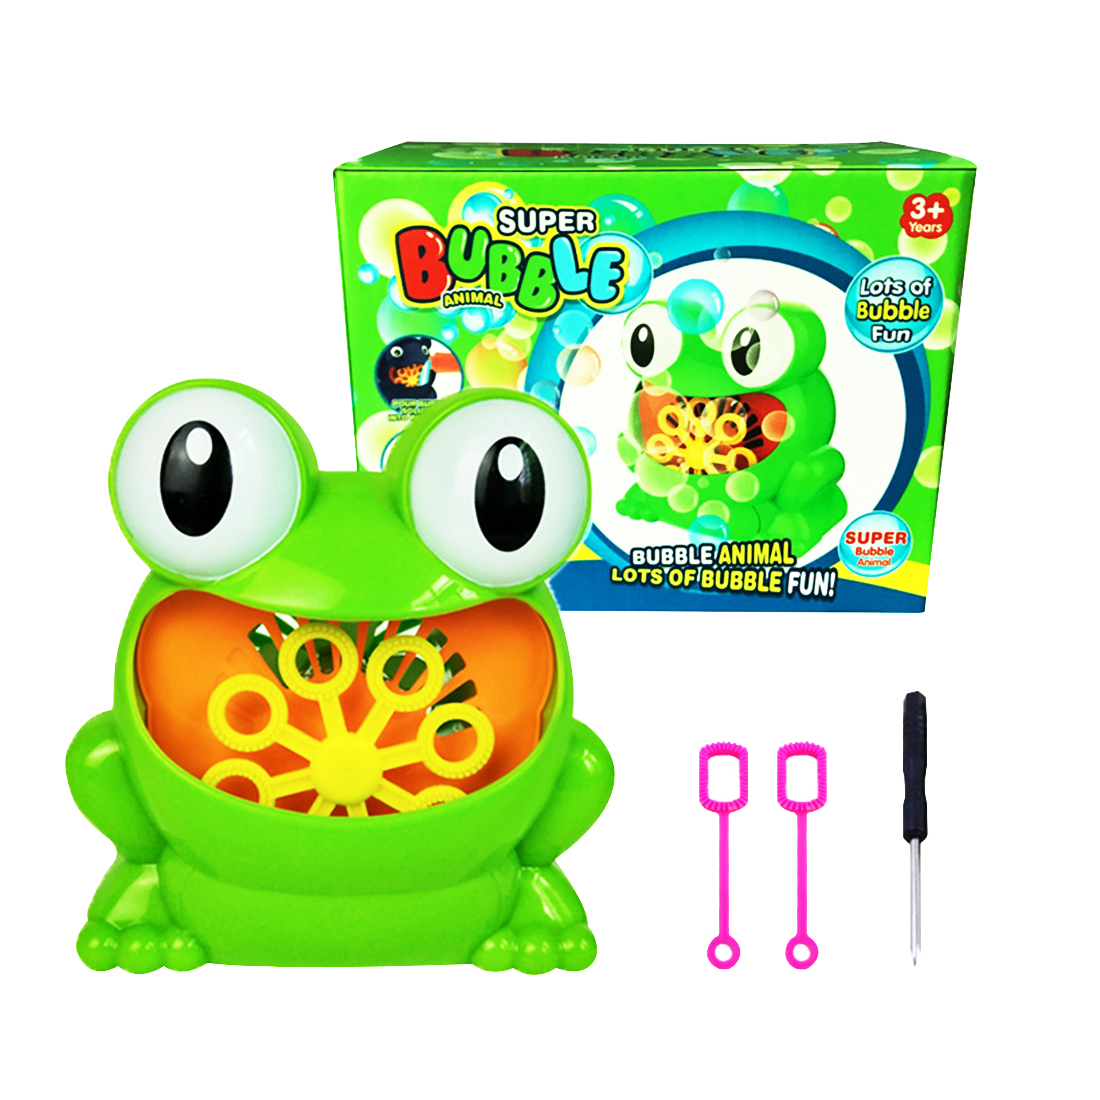 Logical Suriwhs Full-automatic Frog Shape Bubble Machine With Bubble Bar And Screwdriver For Children Indoor Outdoor Parties Toys Good Companions For Children As Well As Adults Outdoor Fun & Sports